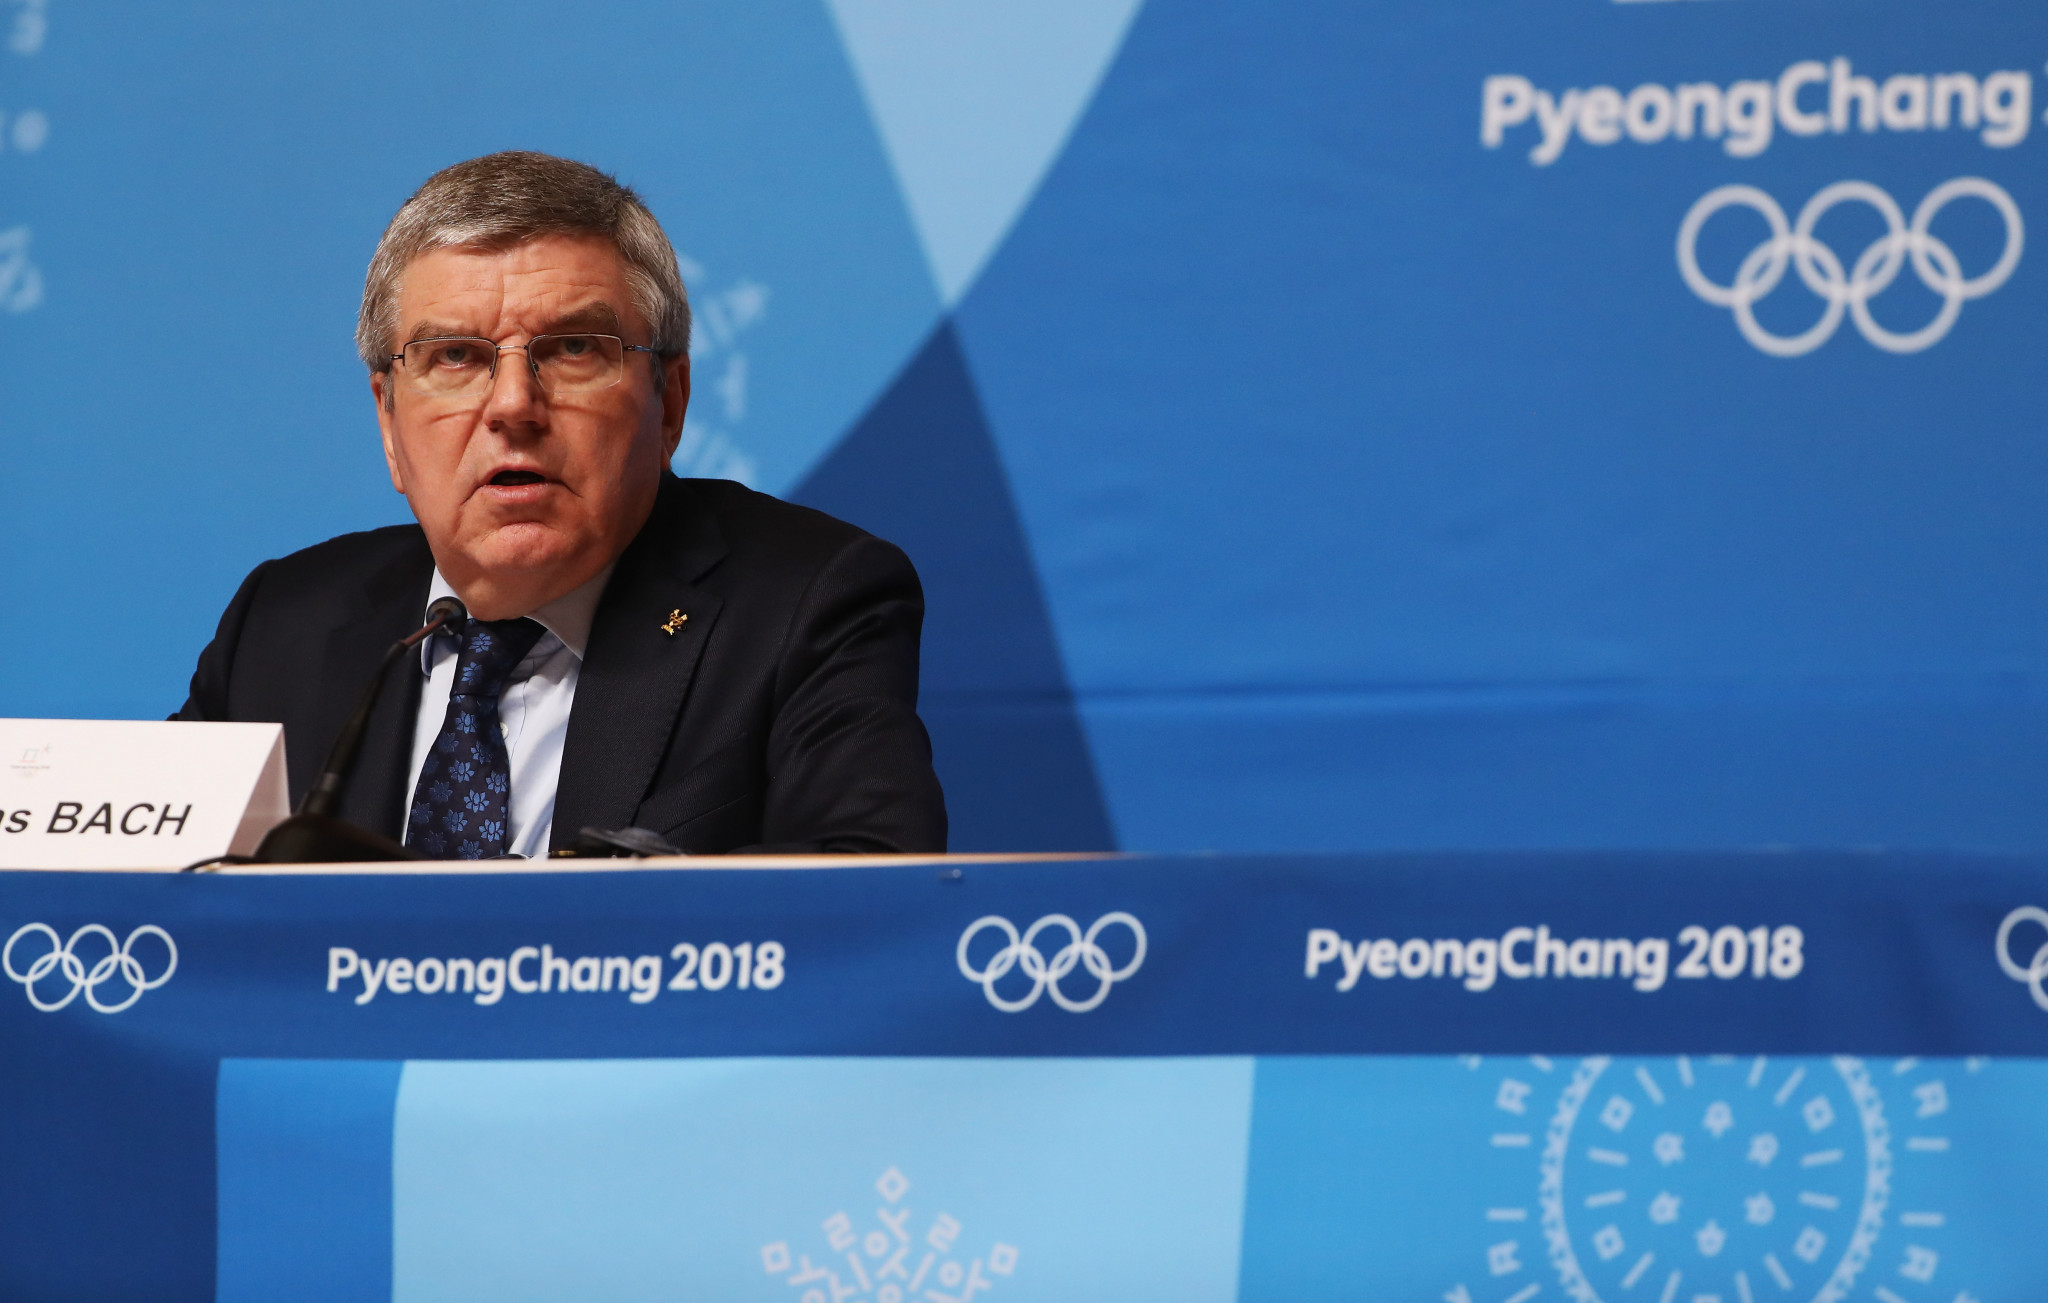 Thomas Bach also addressed the role that IFs must play in continuing cases against Russia ©Getty Images